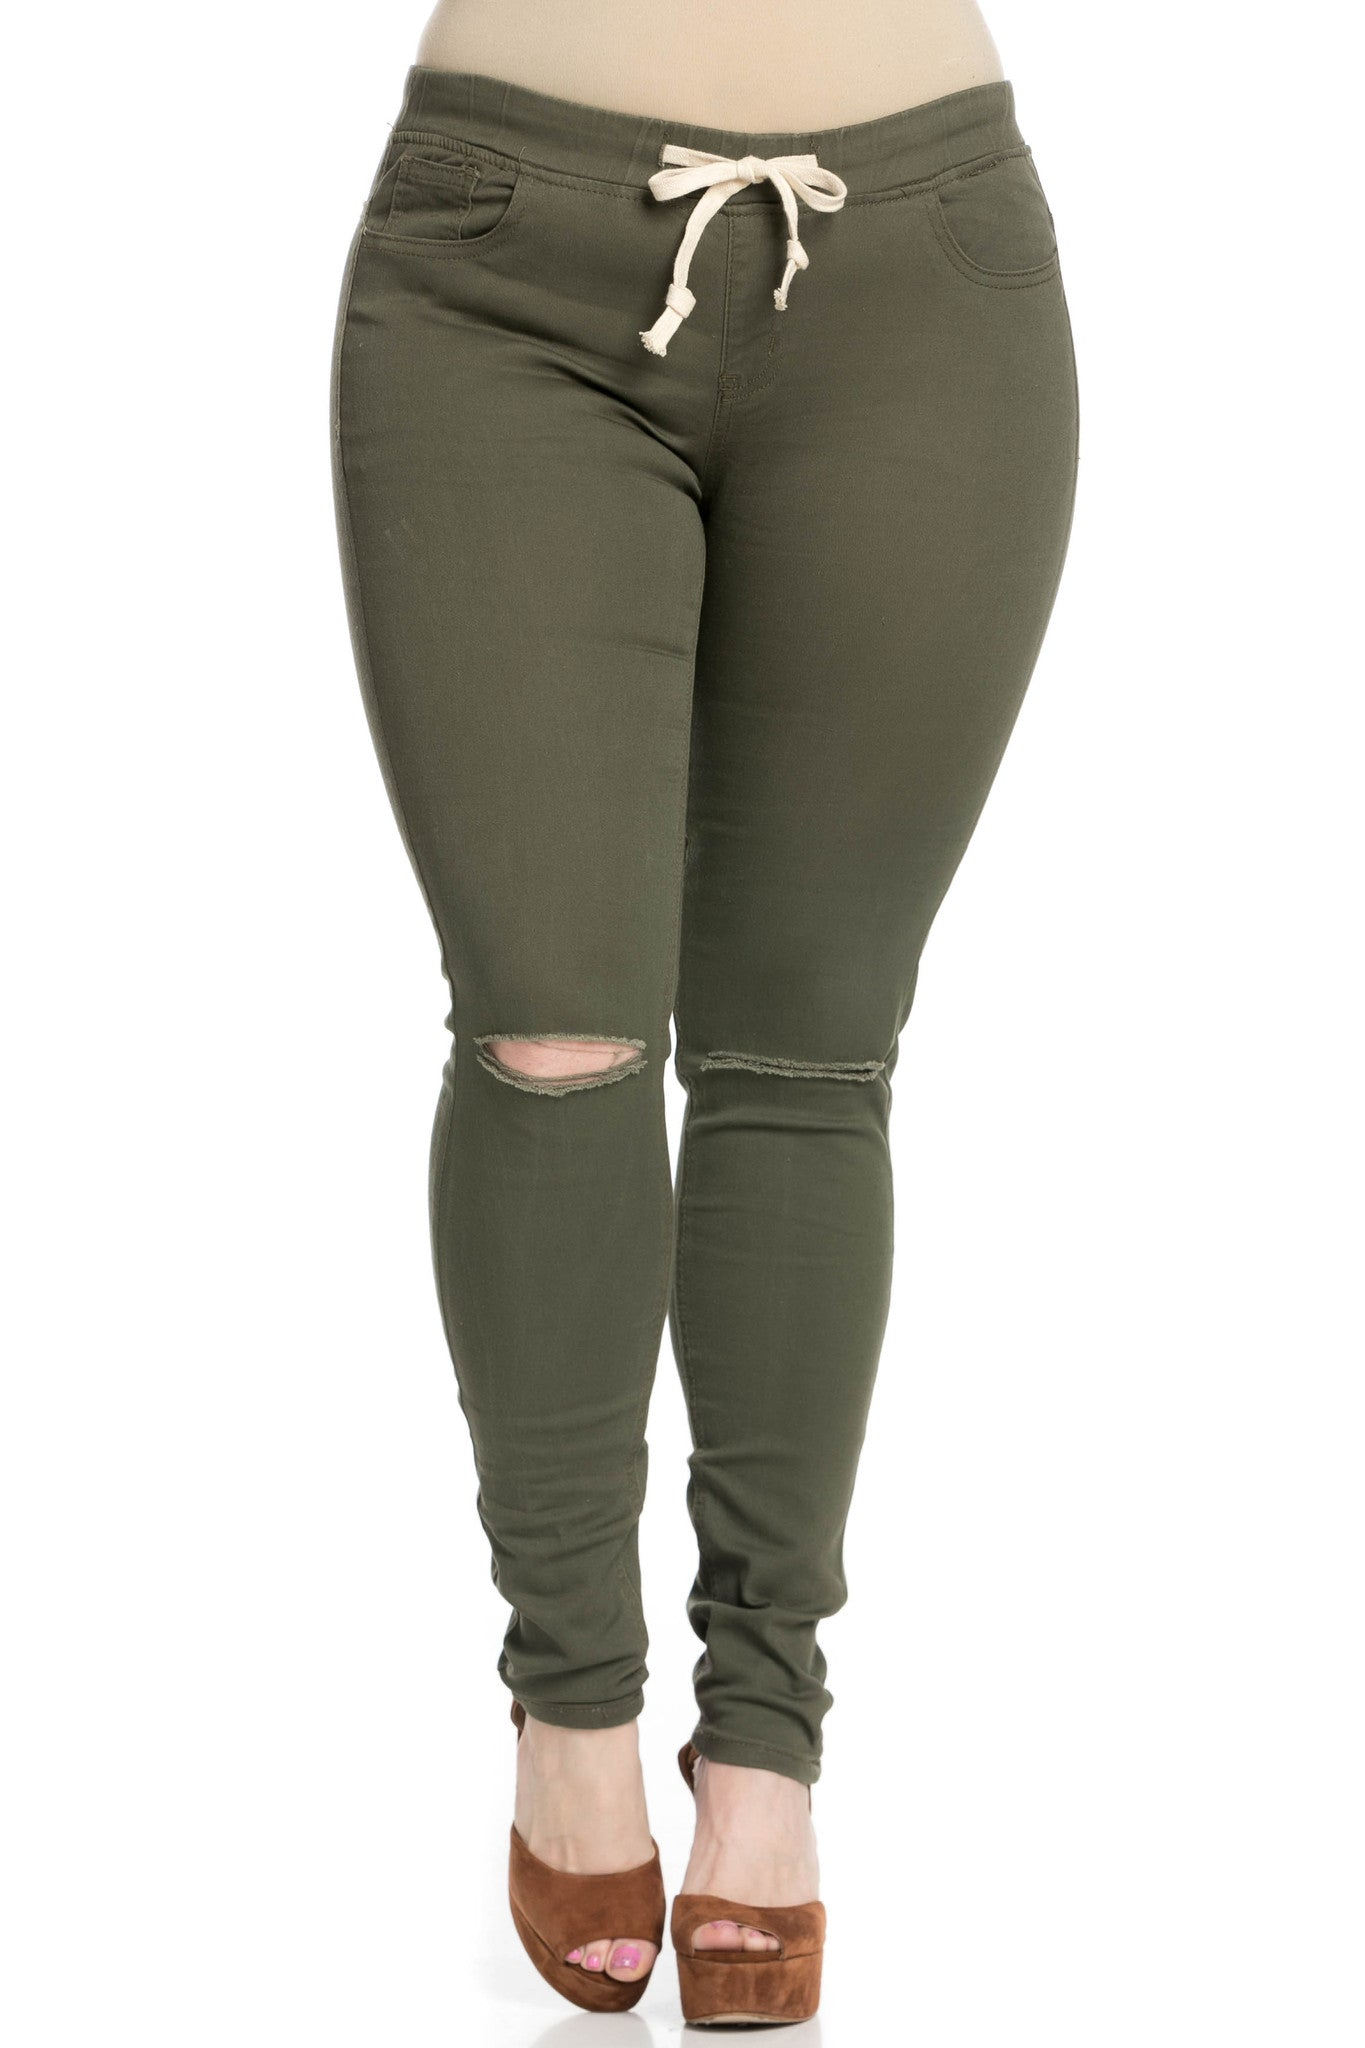 Destroyed Olive Skinny Jogger Jeans - Pants - My Yuccie - 18